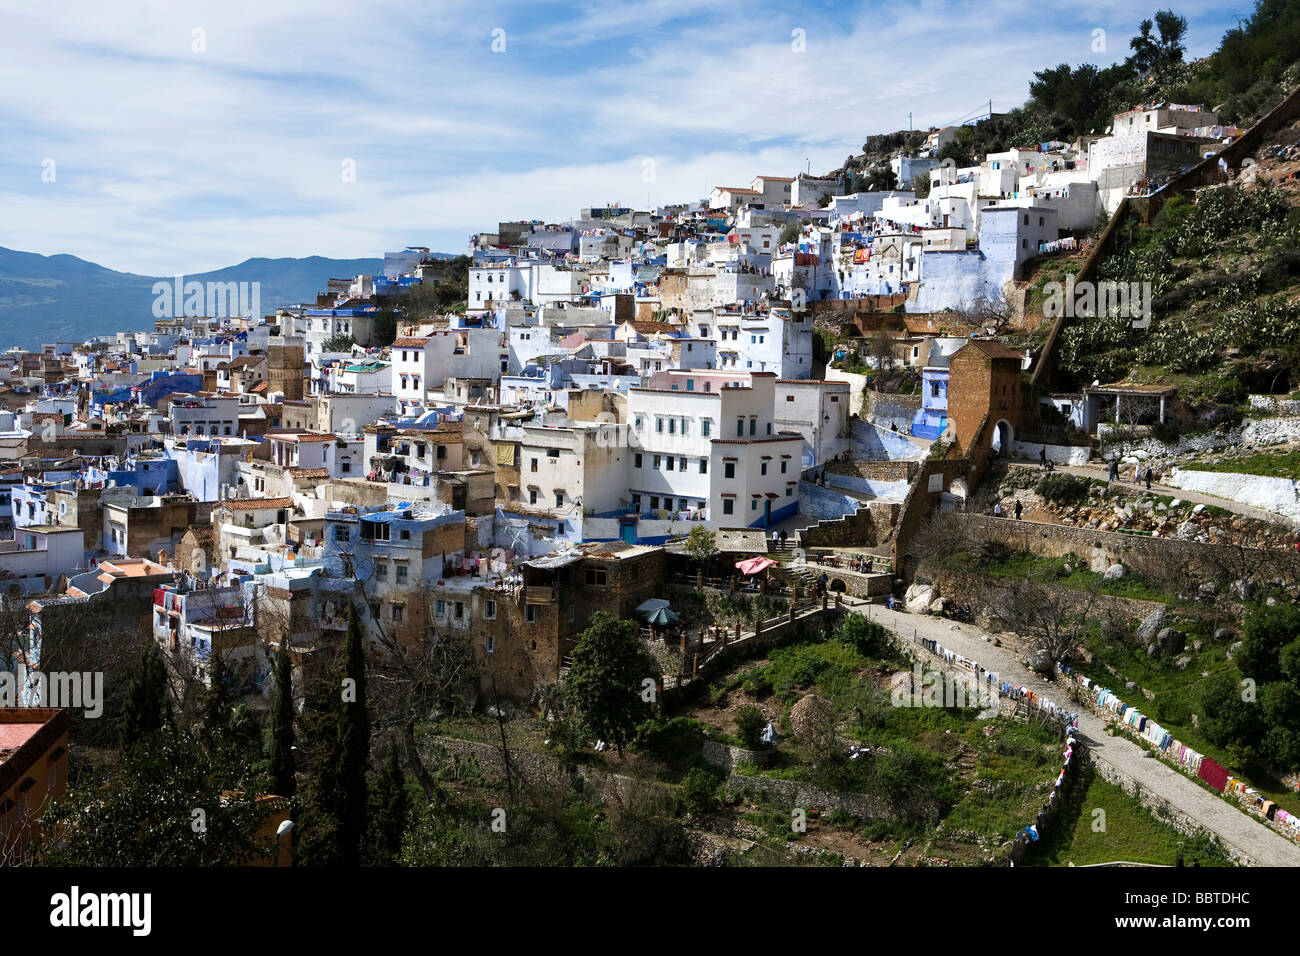 View of Chefchaouen, Morocco, North Africa - Stock Image